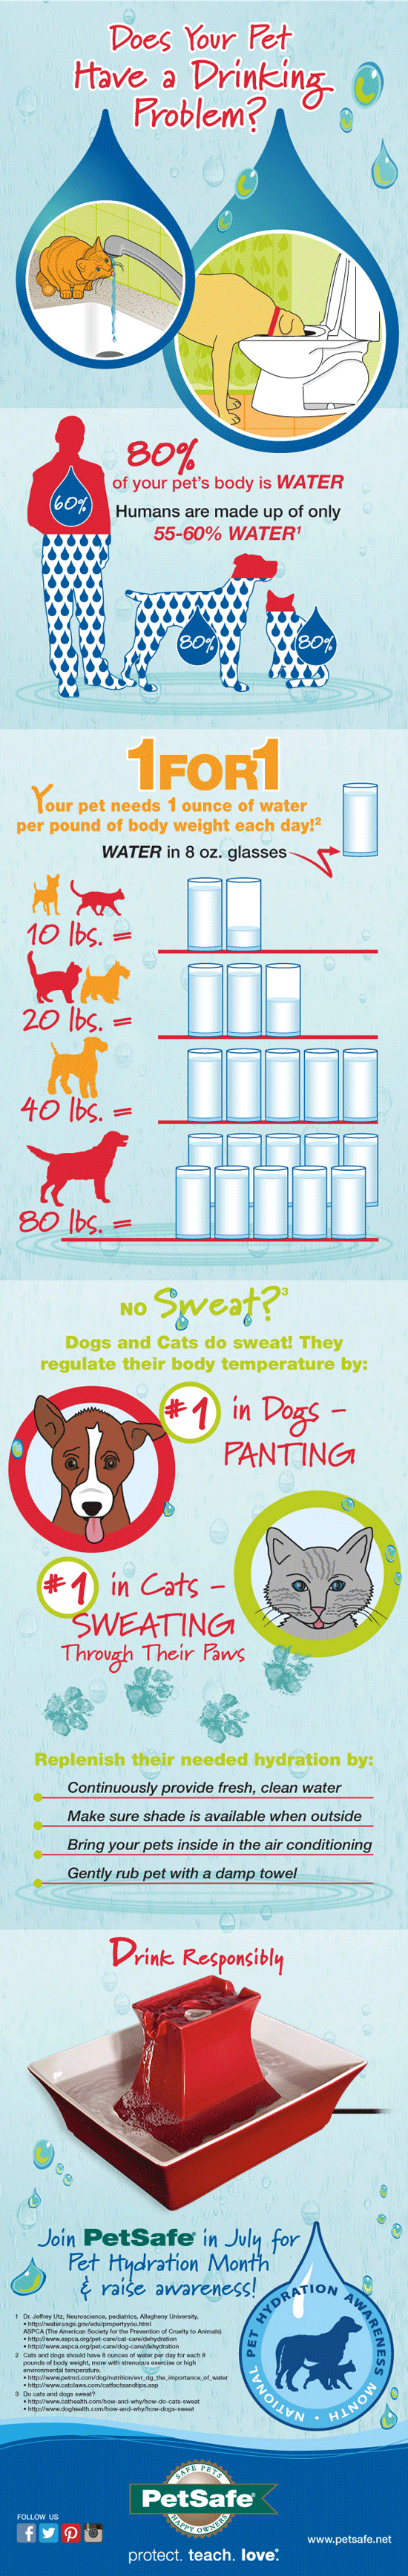 Avoid dog dehydration with these tips - infographic.